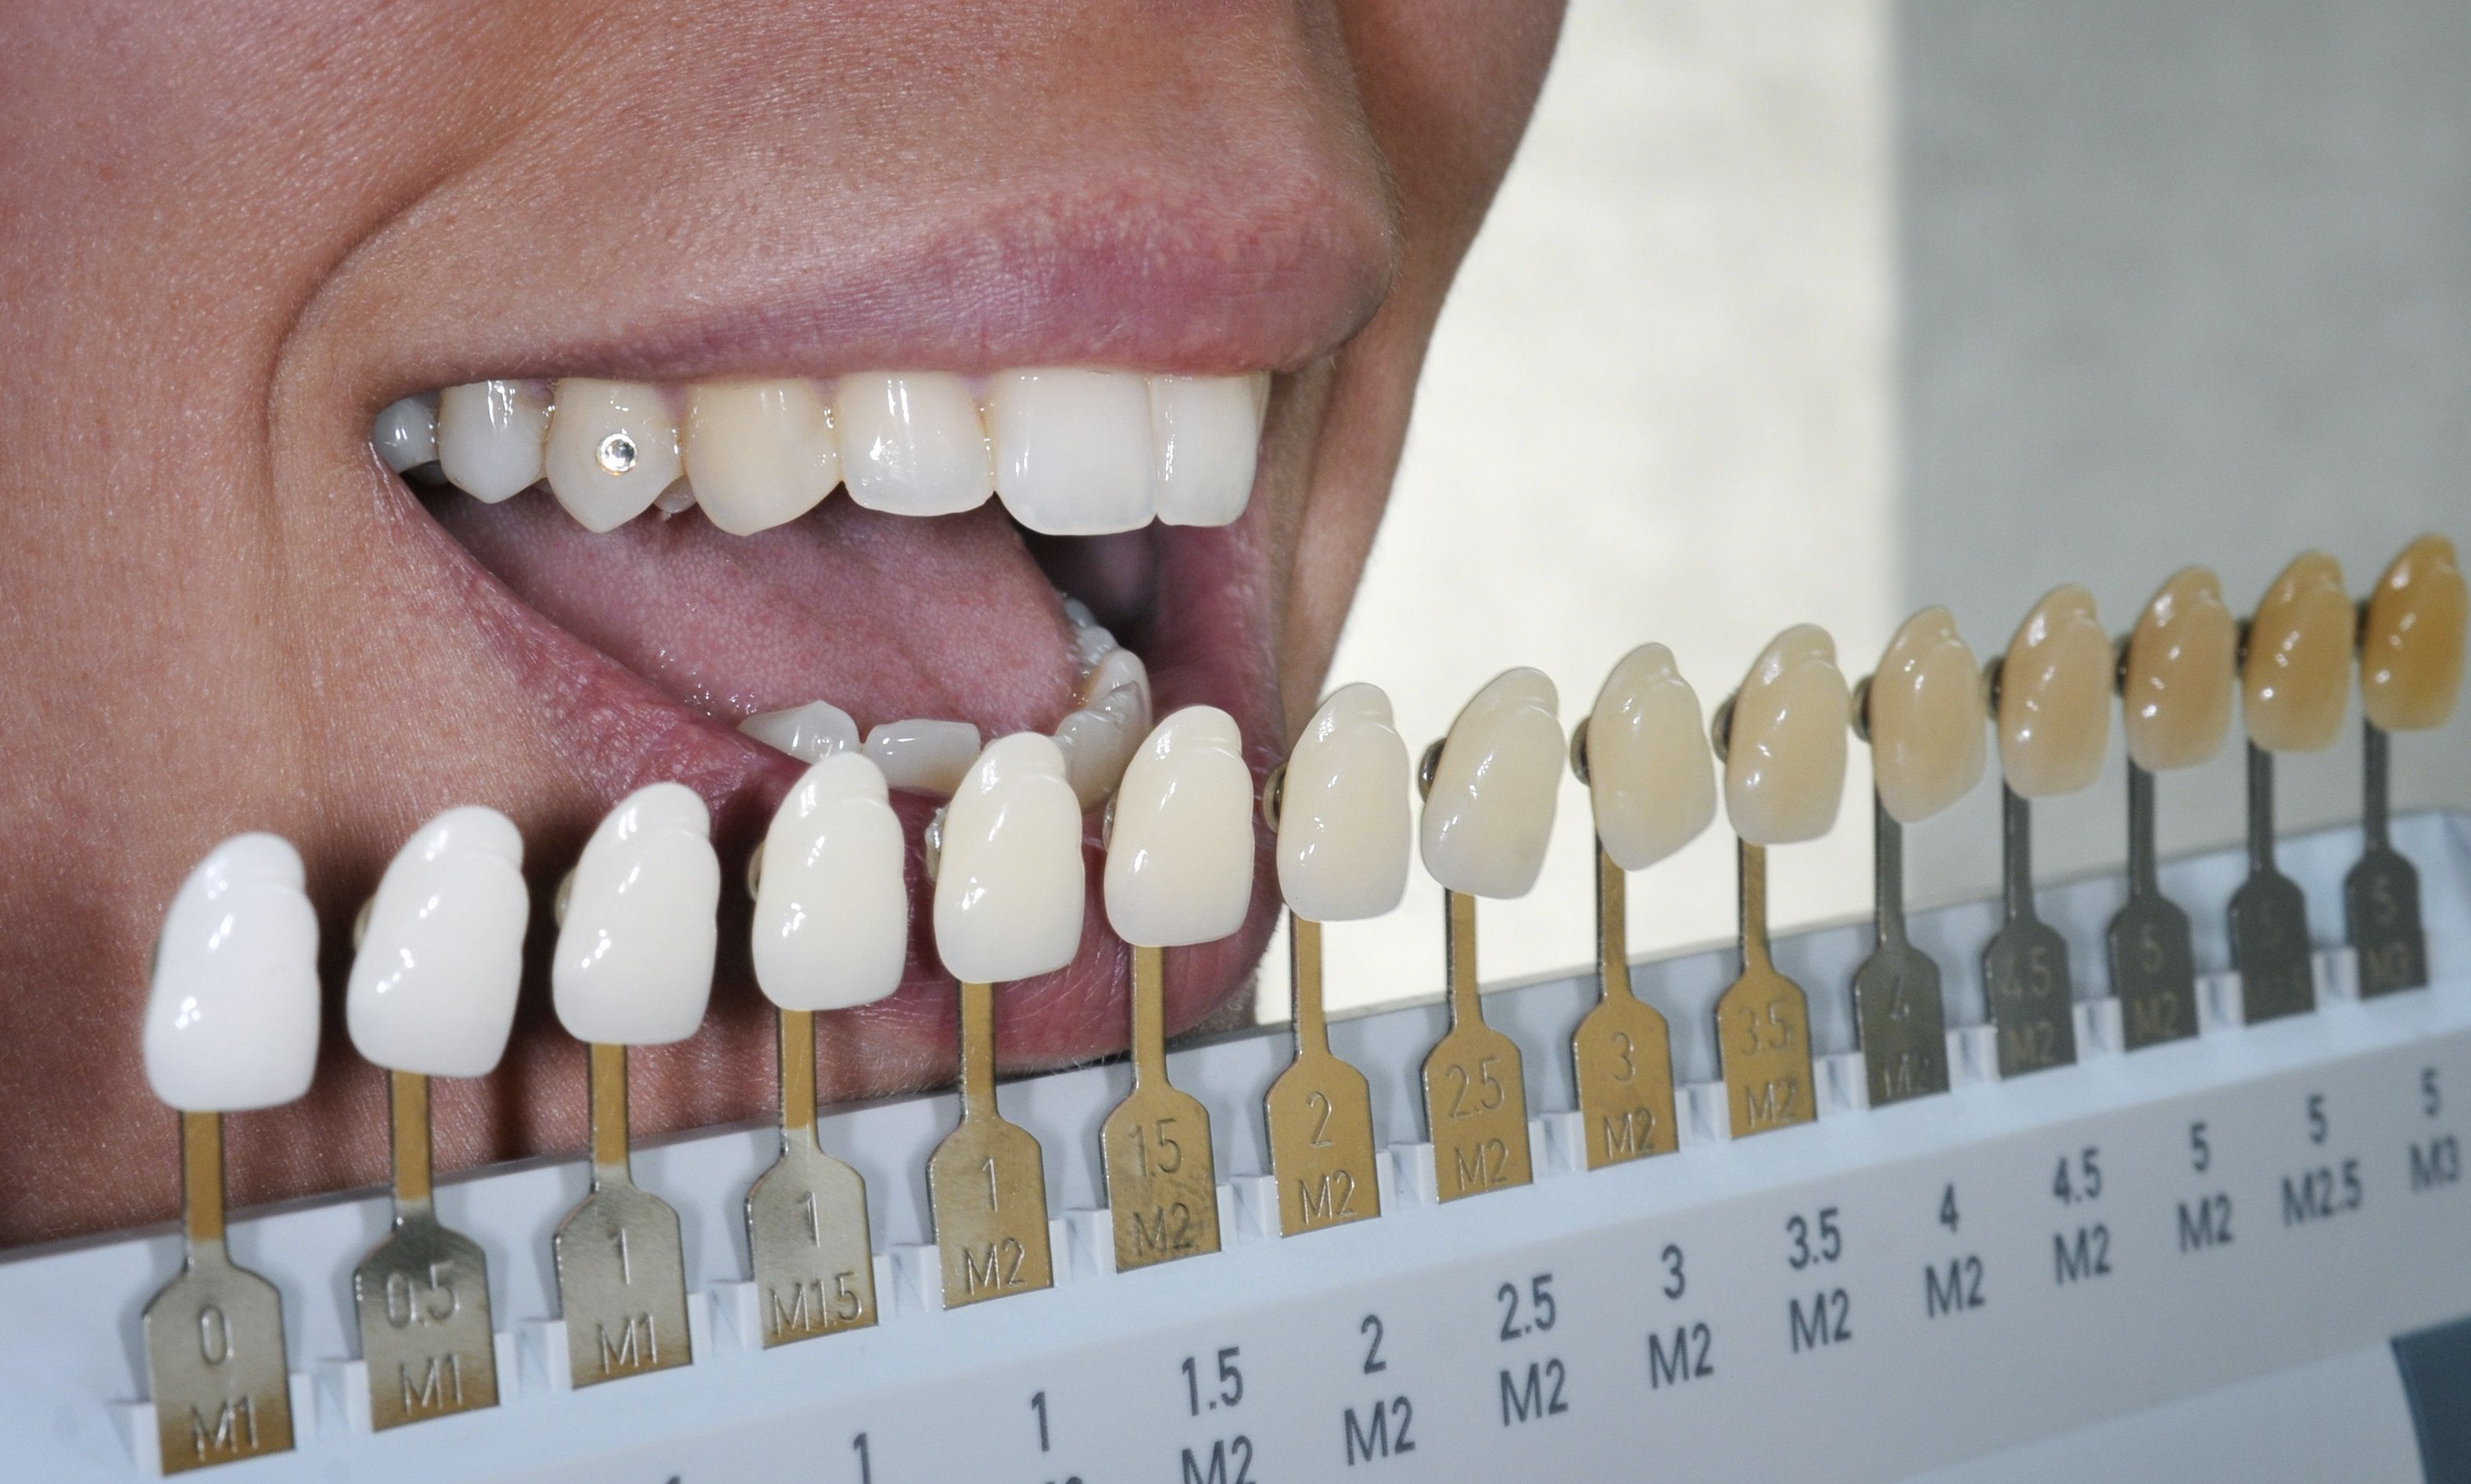 Degrees of tooth discoloration